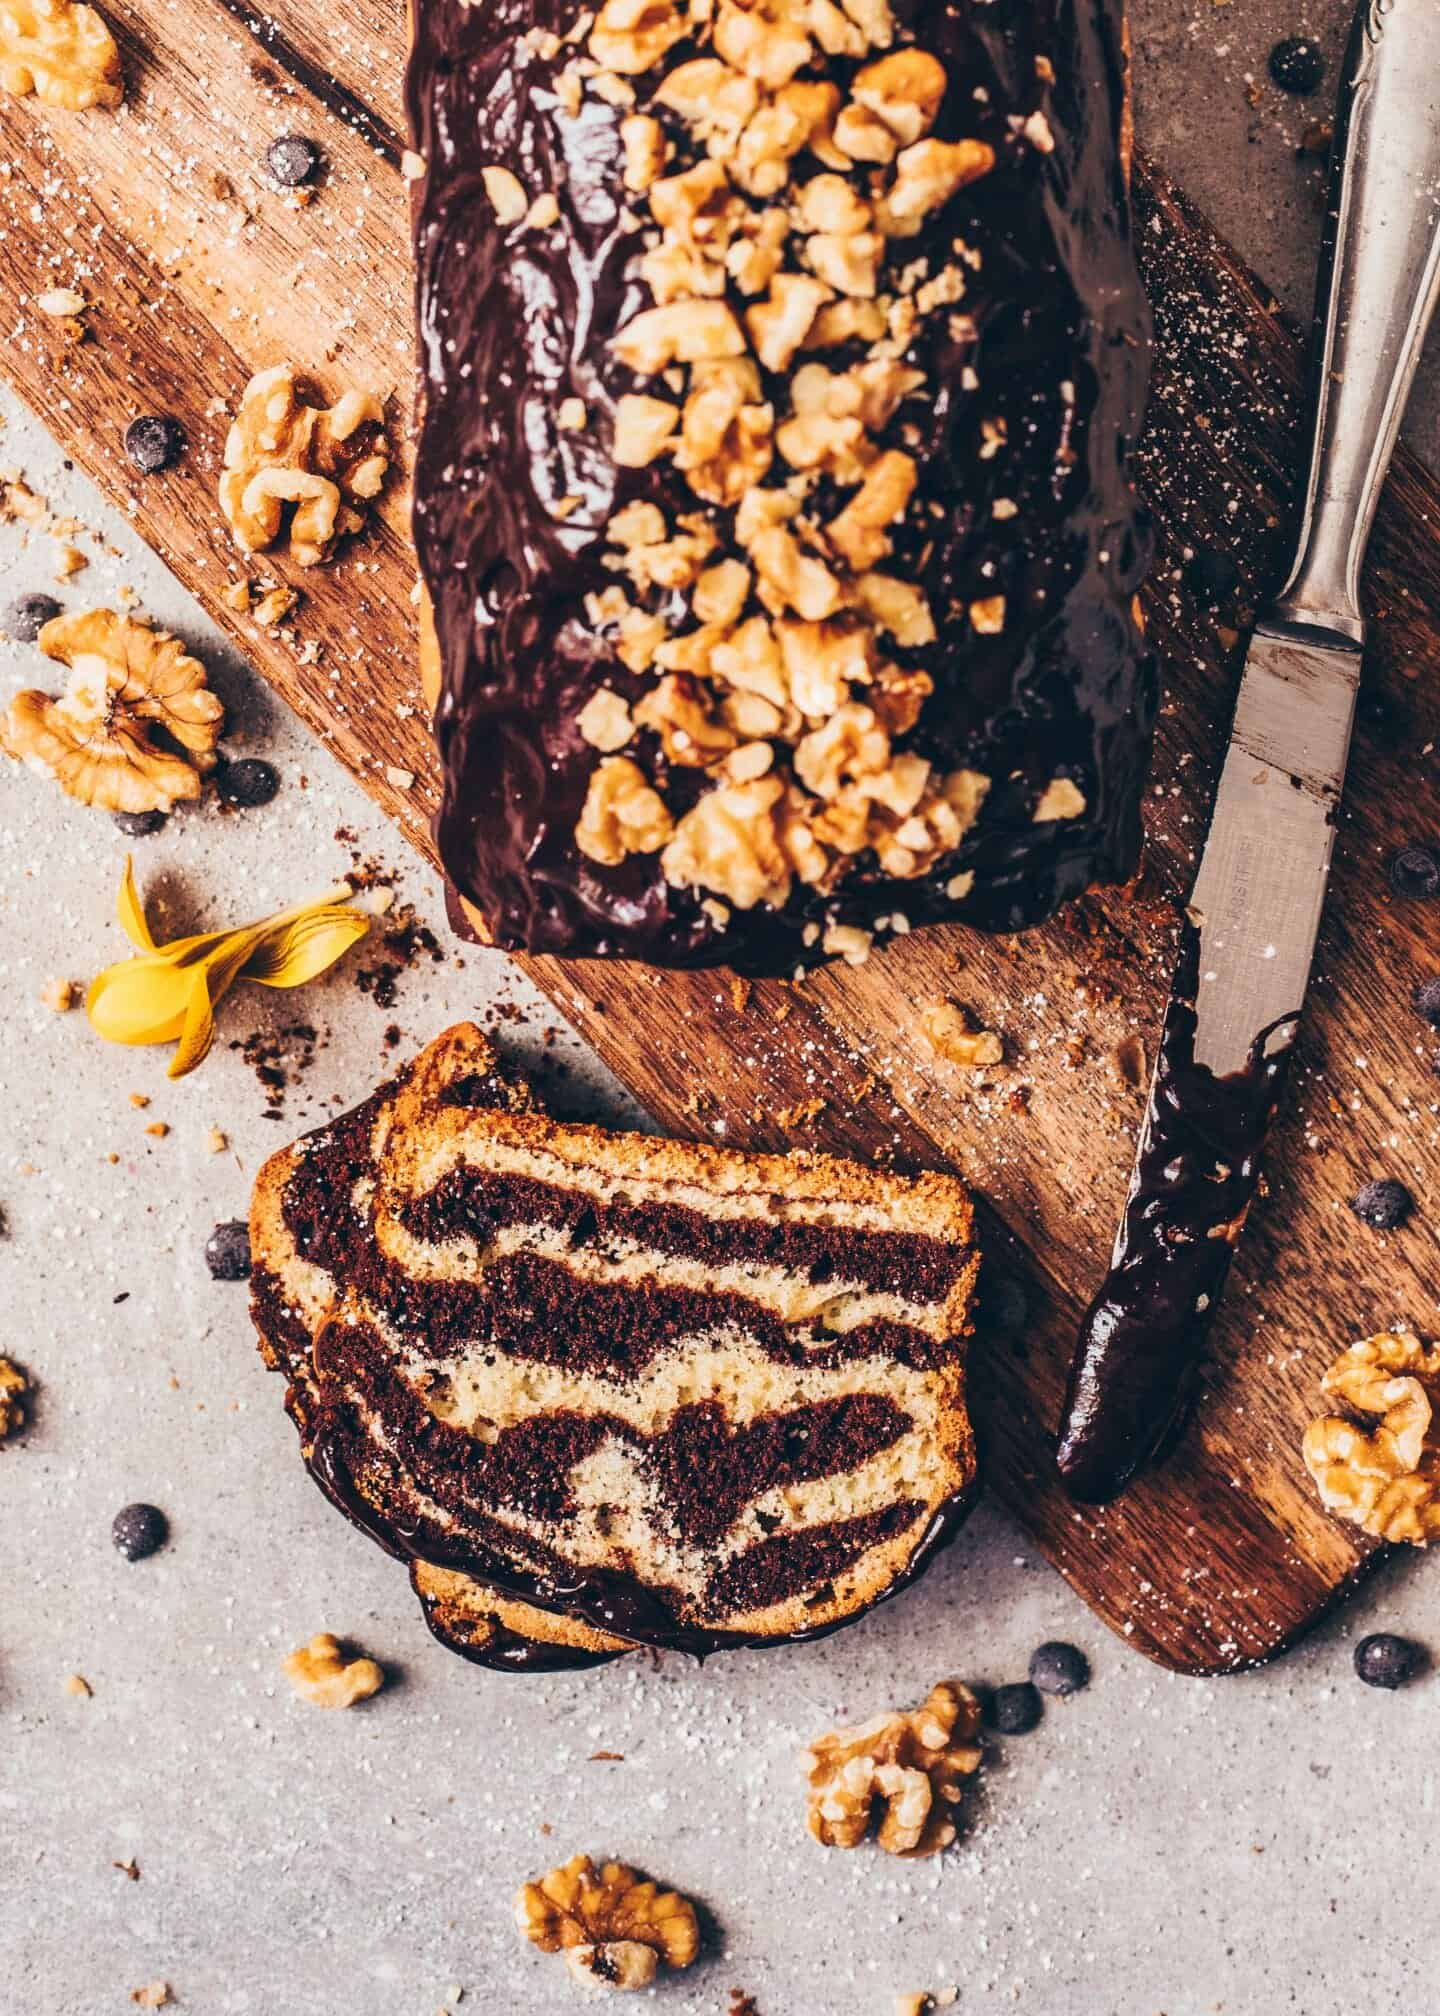 This Vegan Zebra Cake combines a chocolate cake and a vanilla cake into one flashy Marble Cake. It's easy to make from just one batter and so delicious!